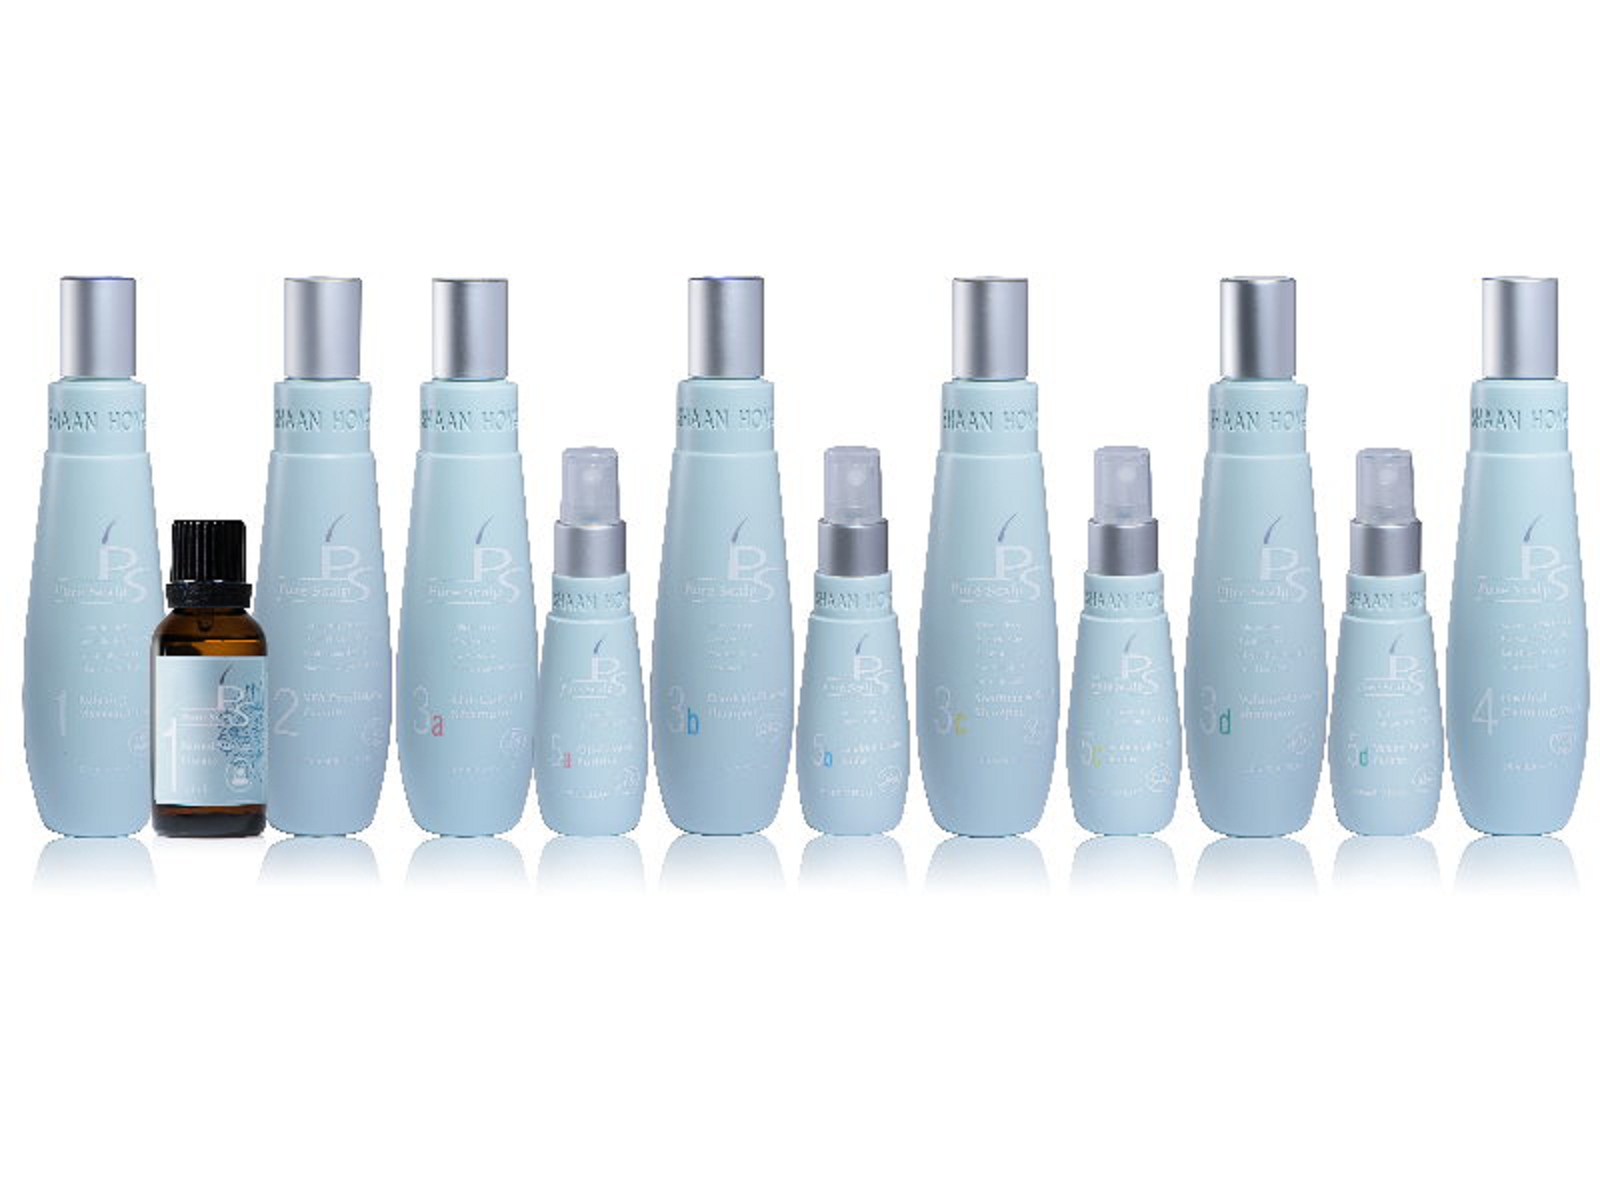 SHAAN HONQ INT'L COSMETIC CORP.-Pure Scalp System